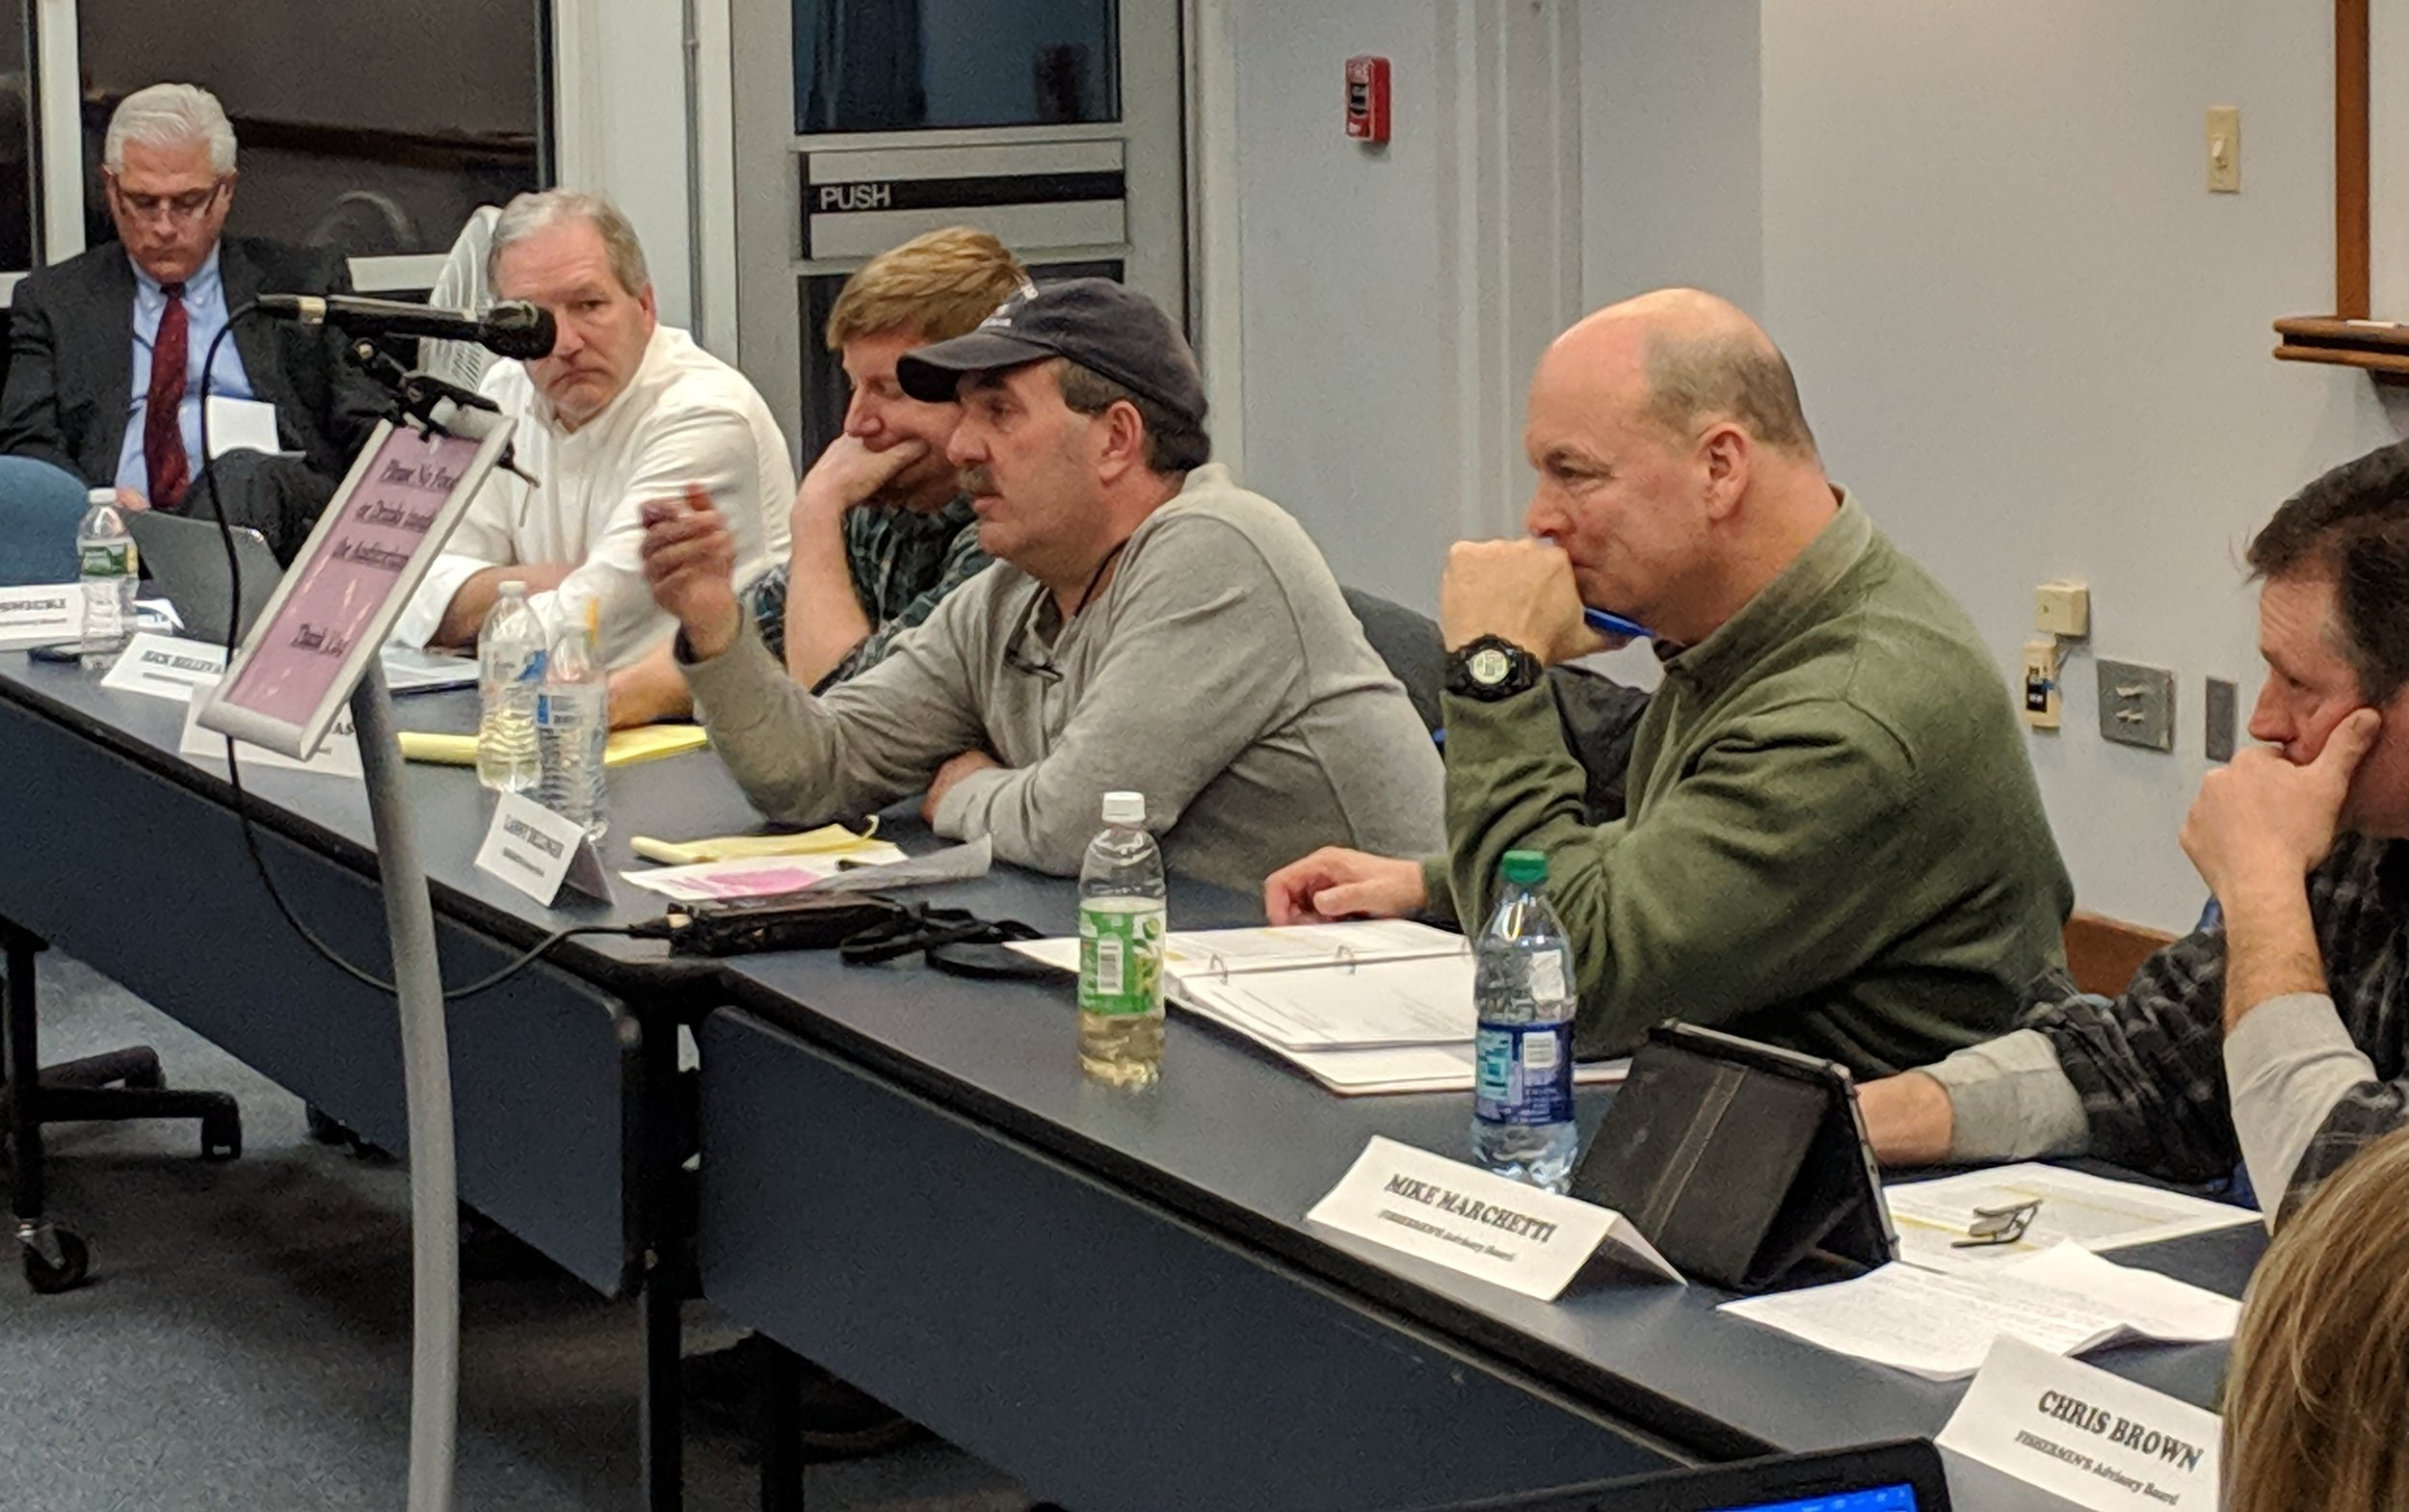 The Fishermen's Advisory Board made a motion to deny the Vineyard Wind project. (Tim Faulkner/ecoRI News)